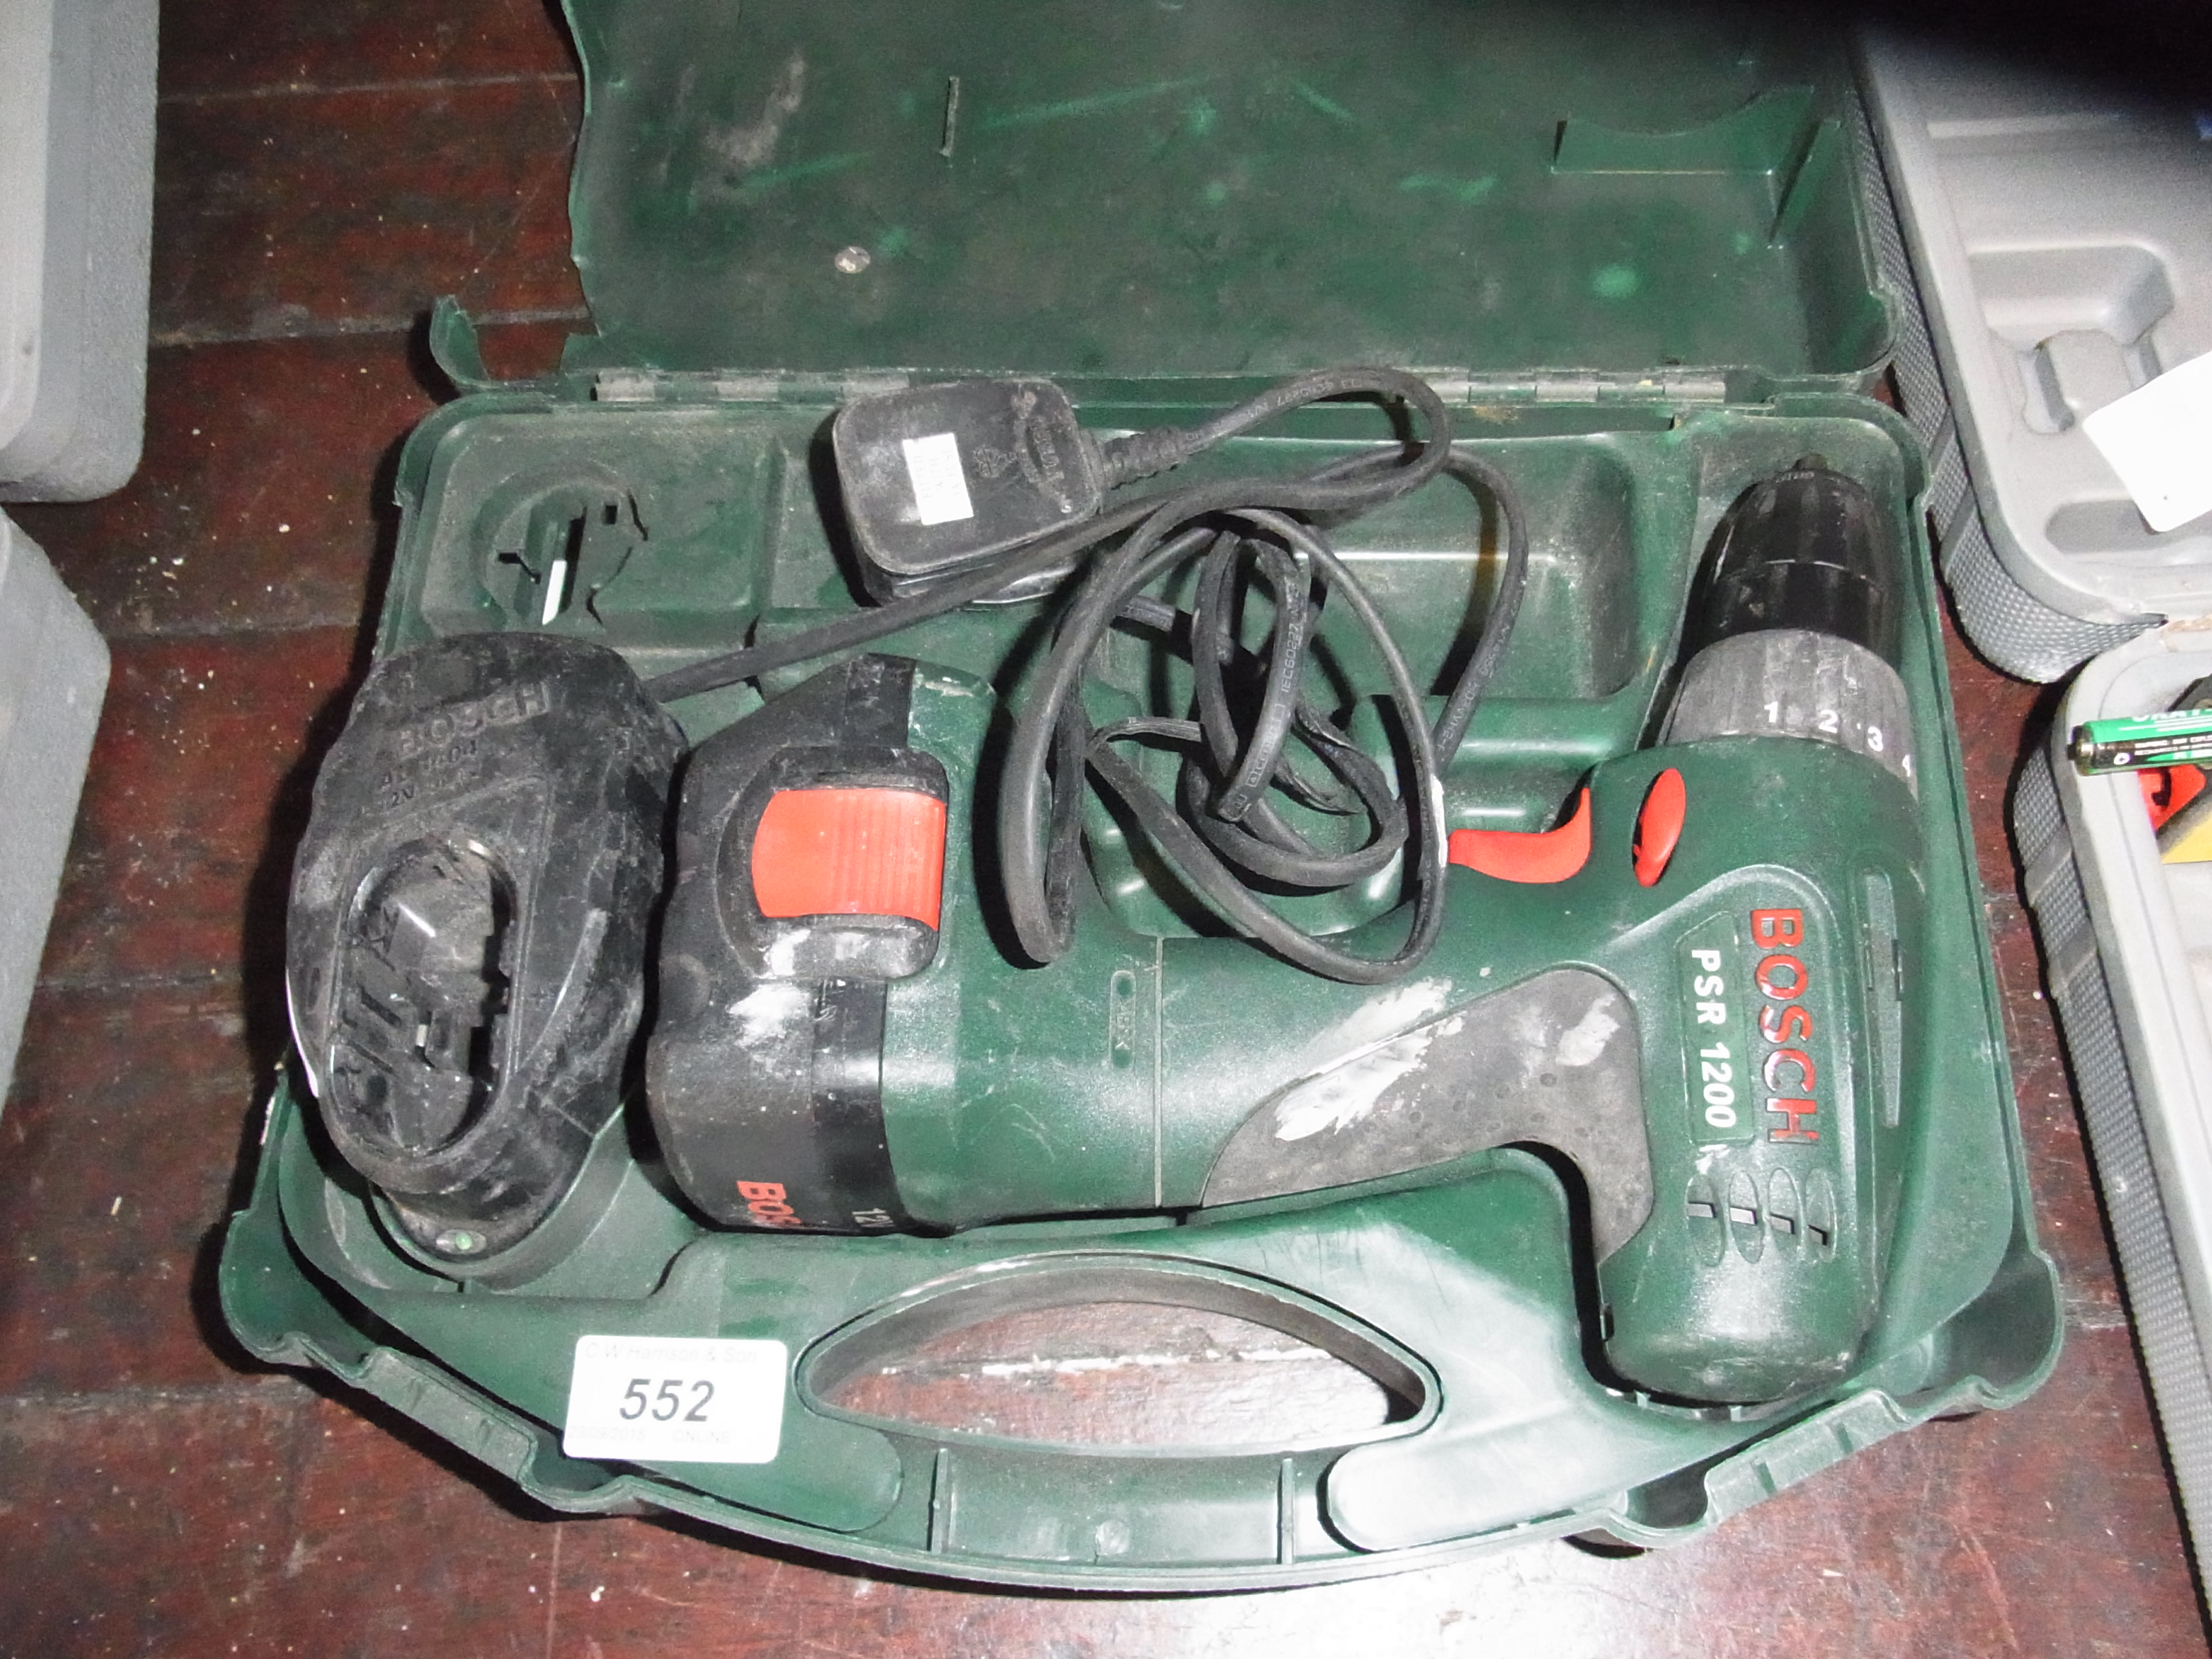 Psr 1200 Bosch Psr 1200 12v Cordless Drill In Case With Charger